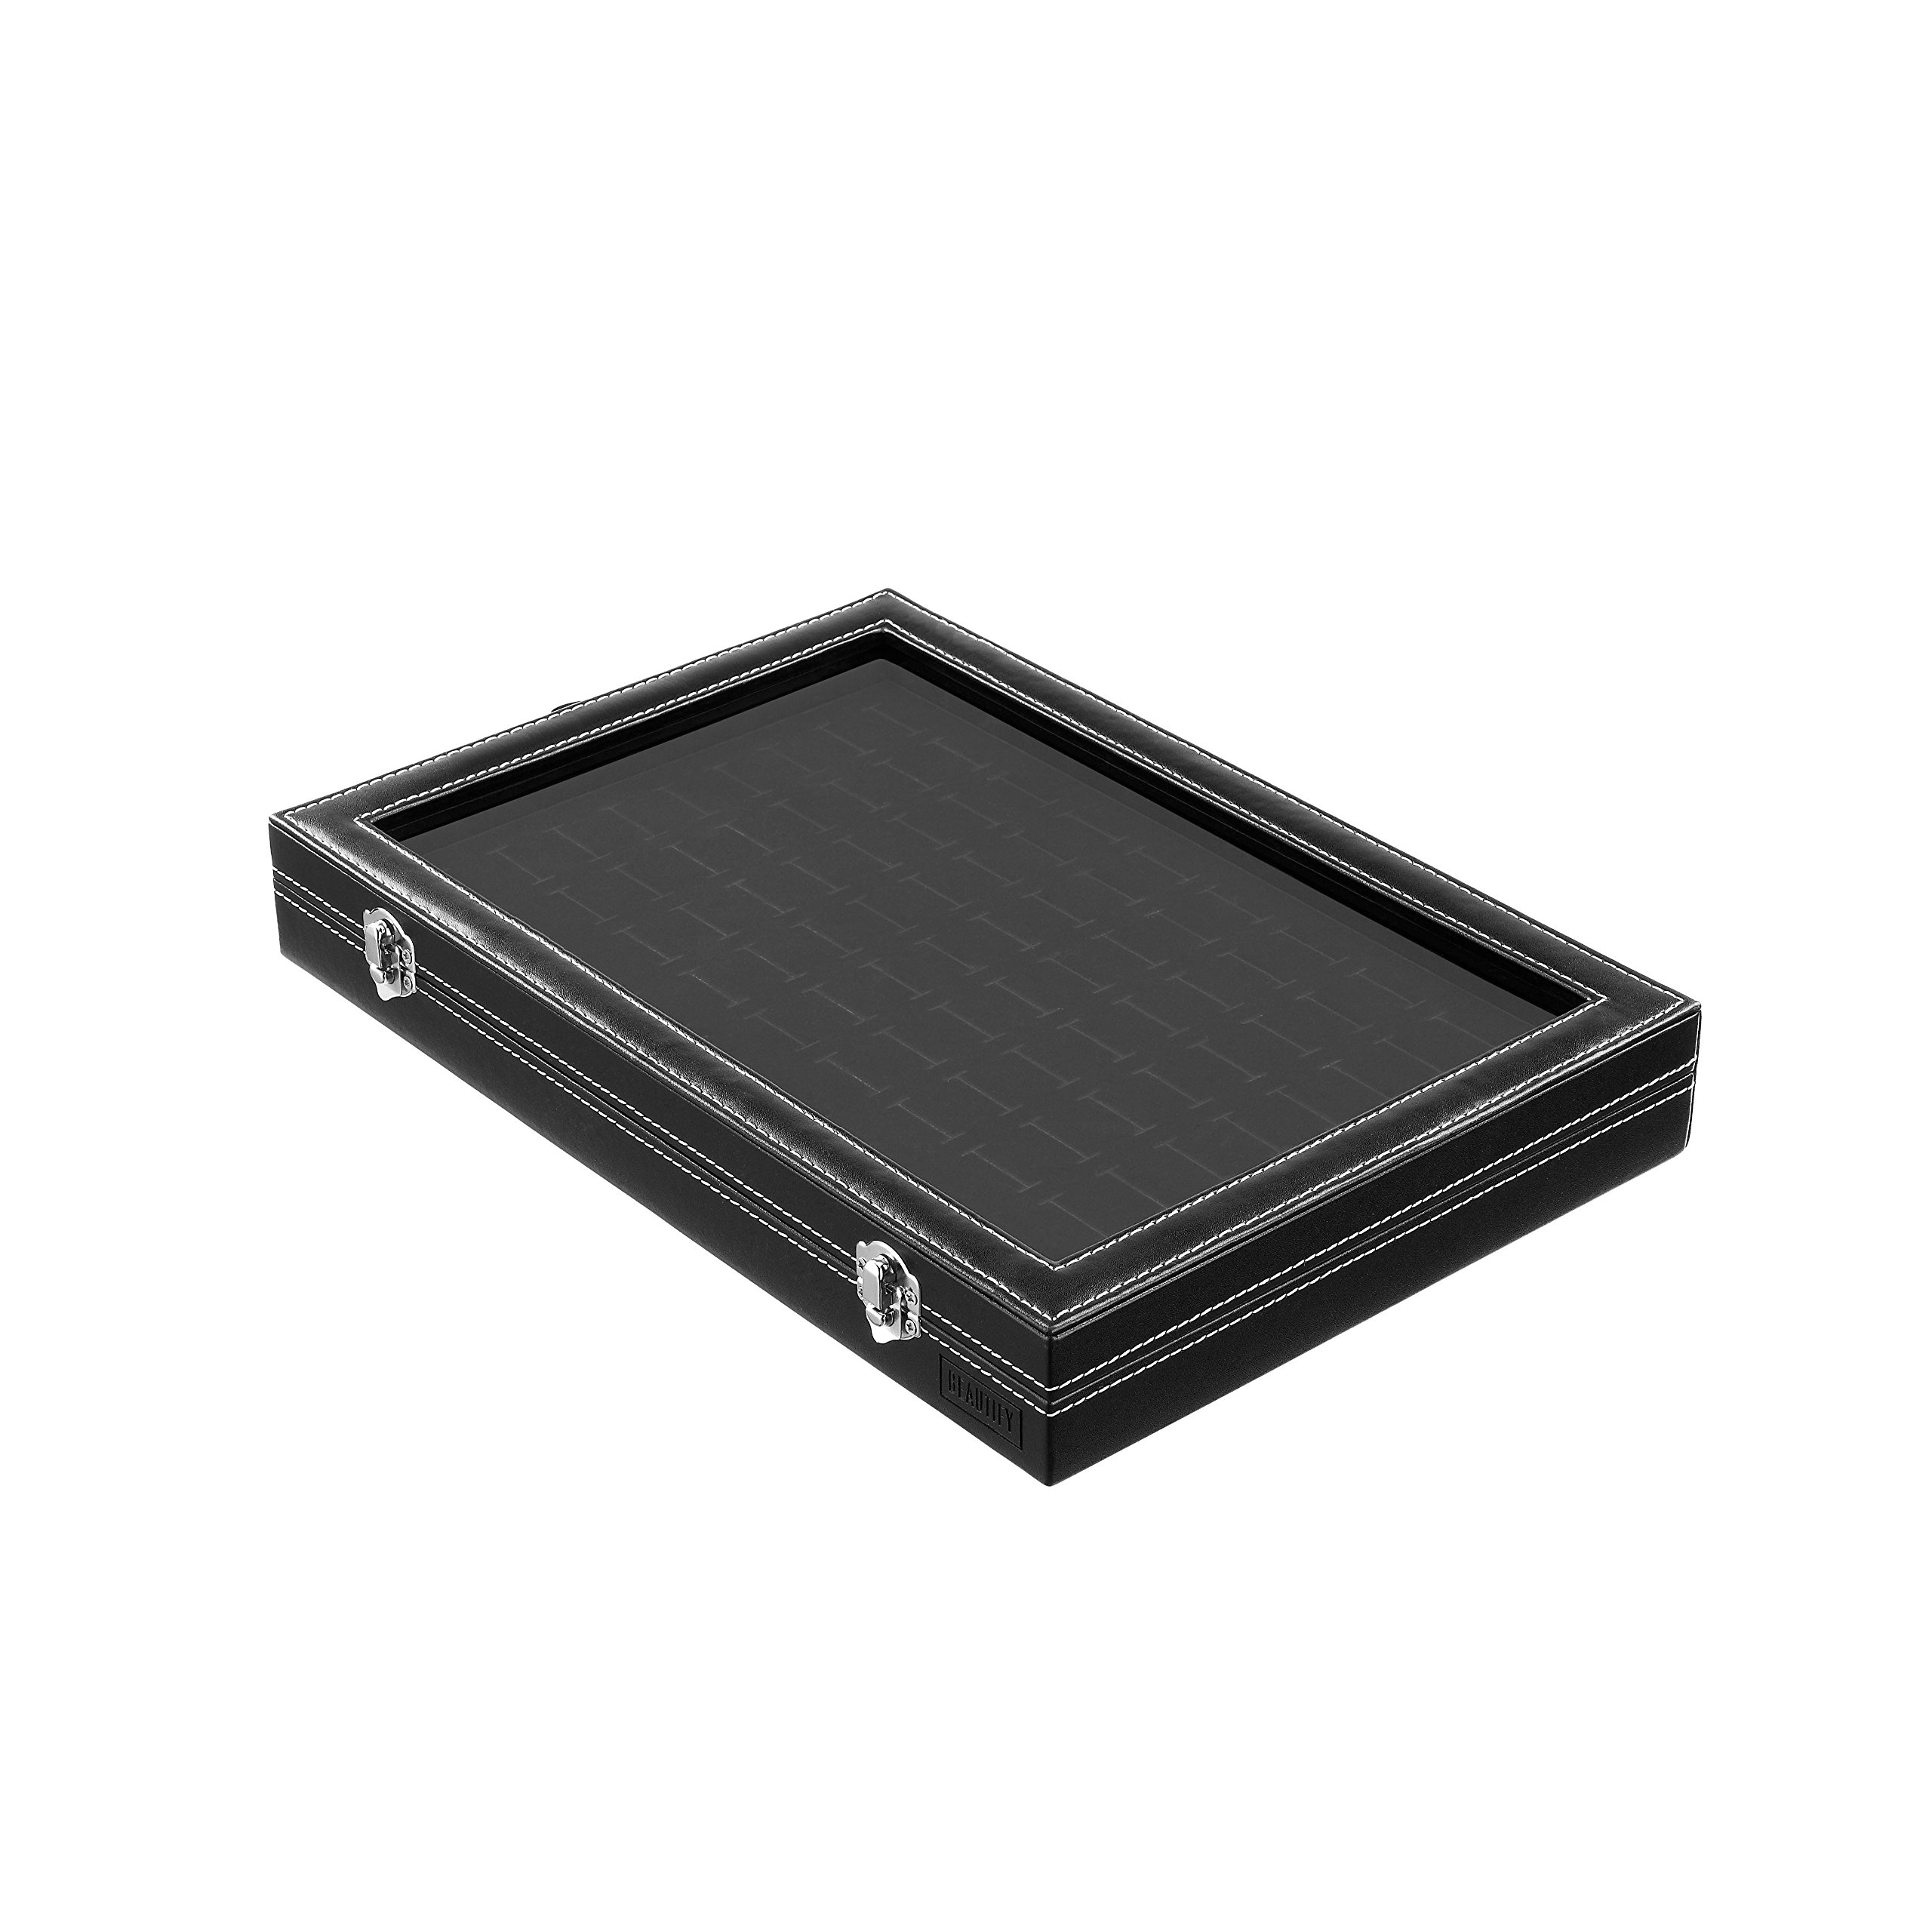 Beautify 100 Slot Ring Box Jewelry Organizer Display Storage Holder Tray Case with Clear Viewing Lid,Black by Beautify (Image #3)